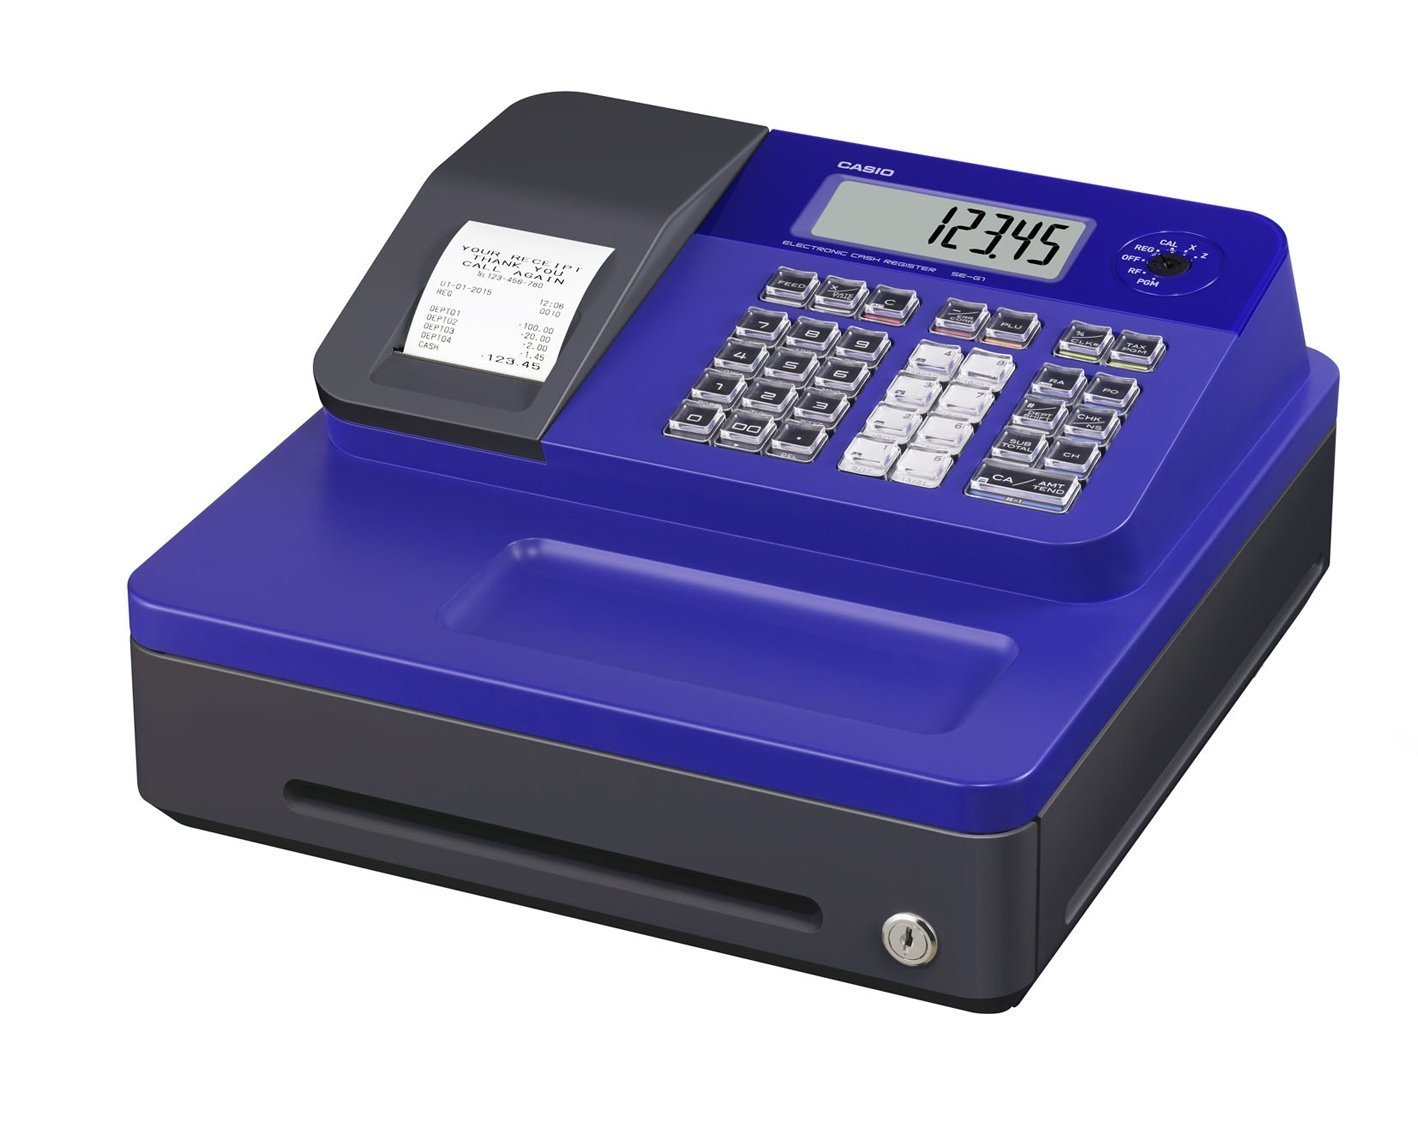 Casio SE-G1SC-BU SG-1 Series Stylish Thermal Printing Cash Register with Blue Cabinet